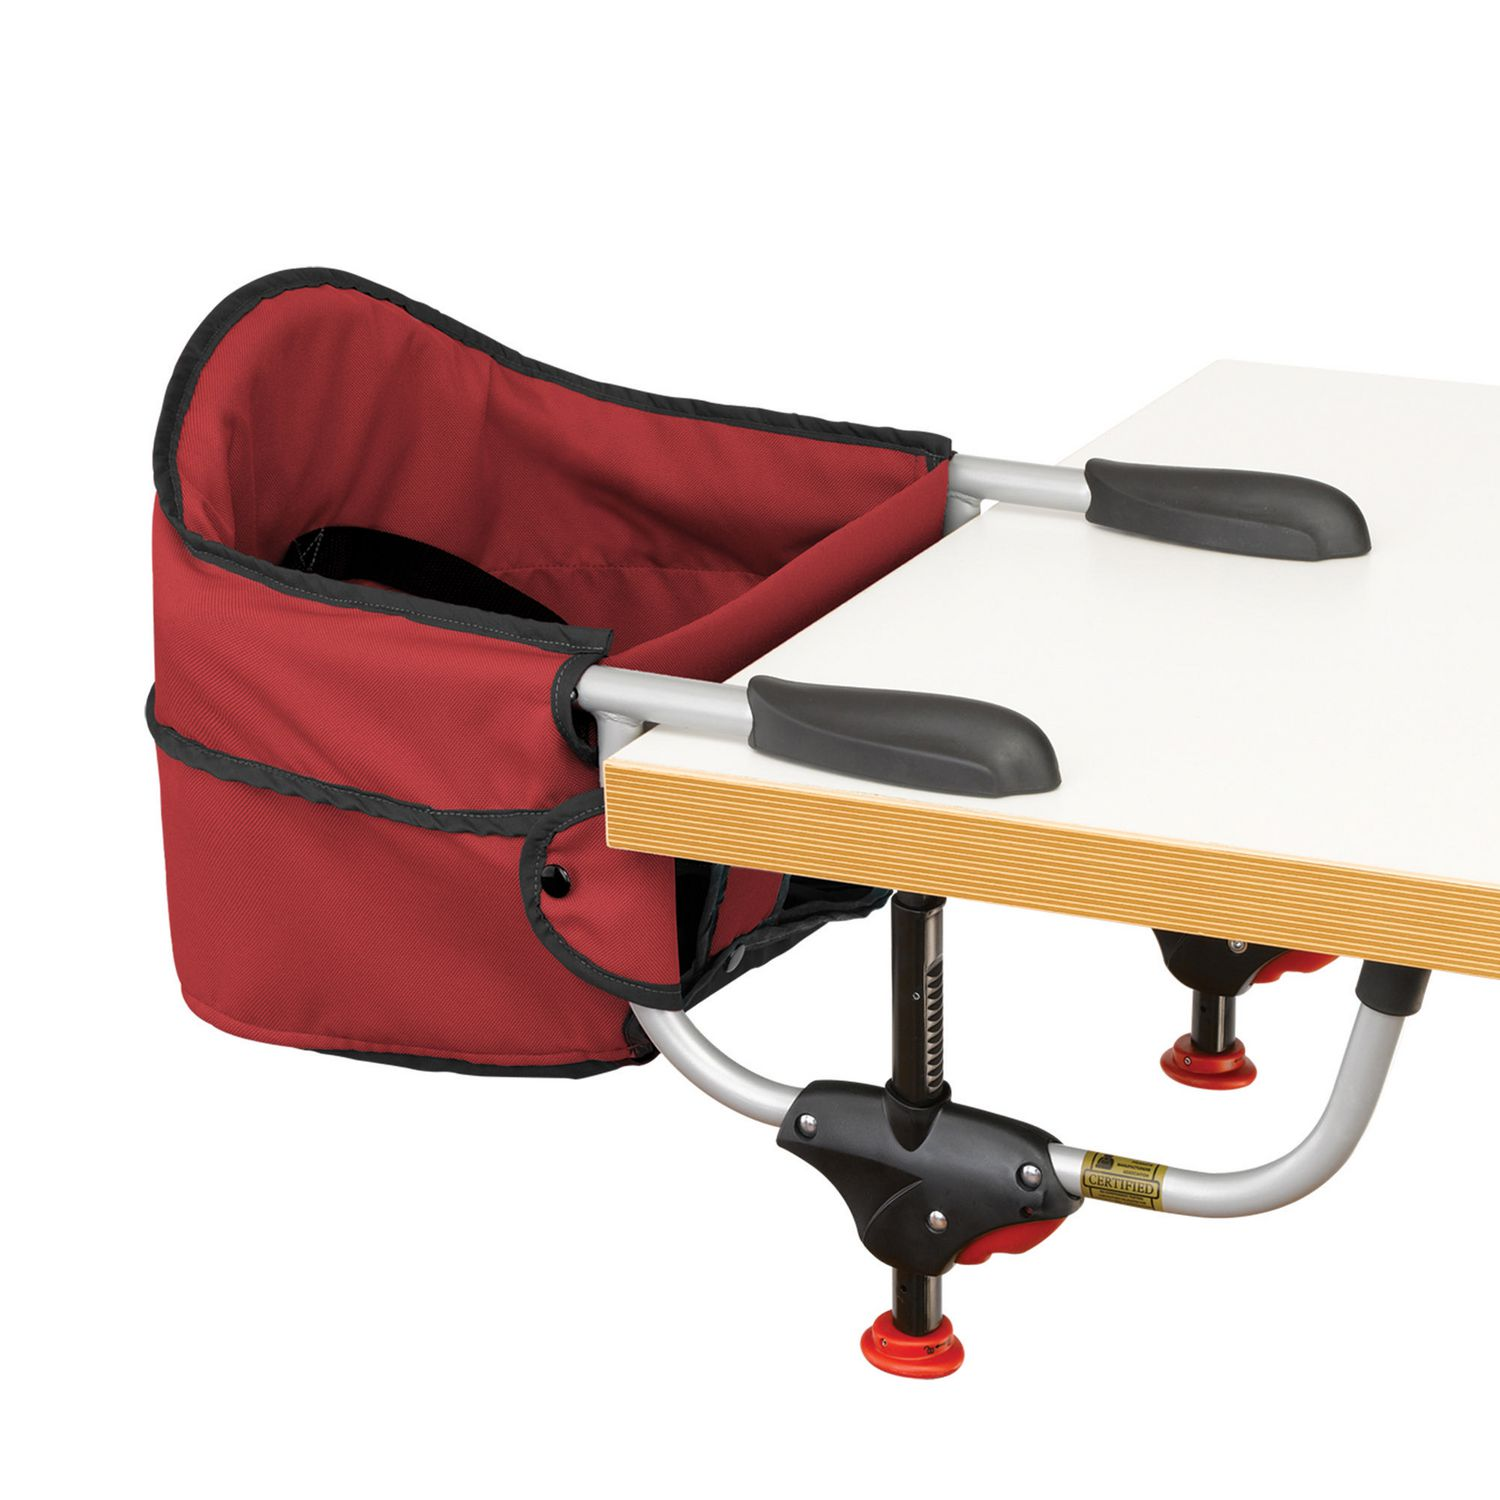 99f2e938497a0 Chicco Caddy Hook-On Chair - Red - image 1 of 5 zoomed image